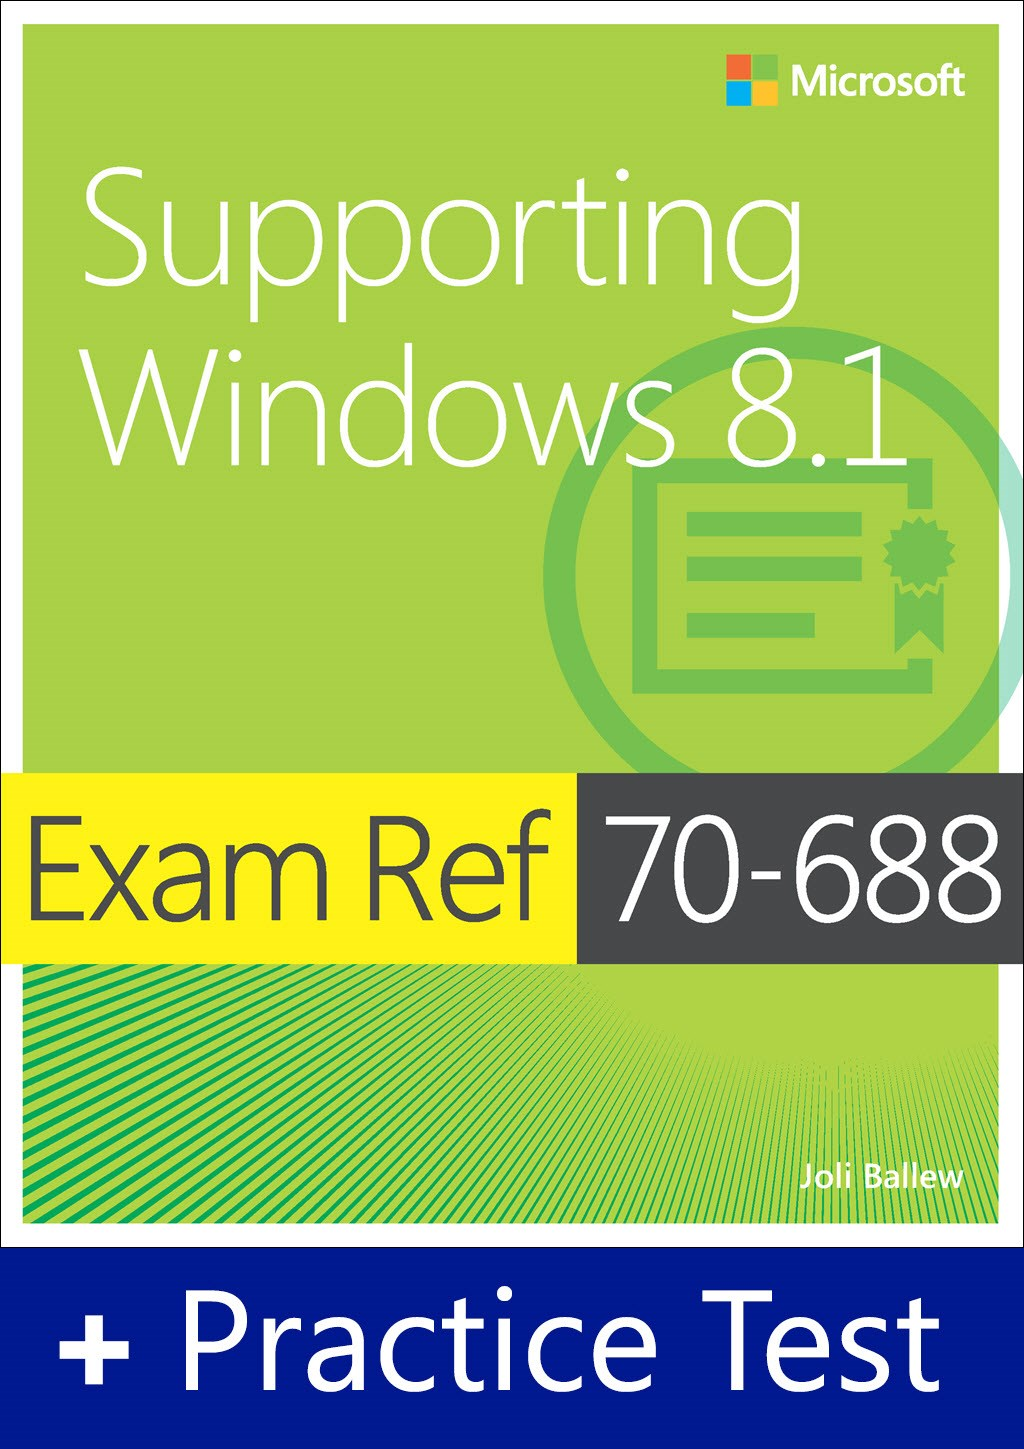 Exam Ref 70-688 Supporting Windows 8.1 with Practice Test